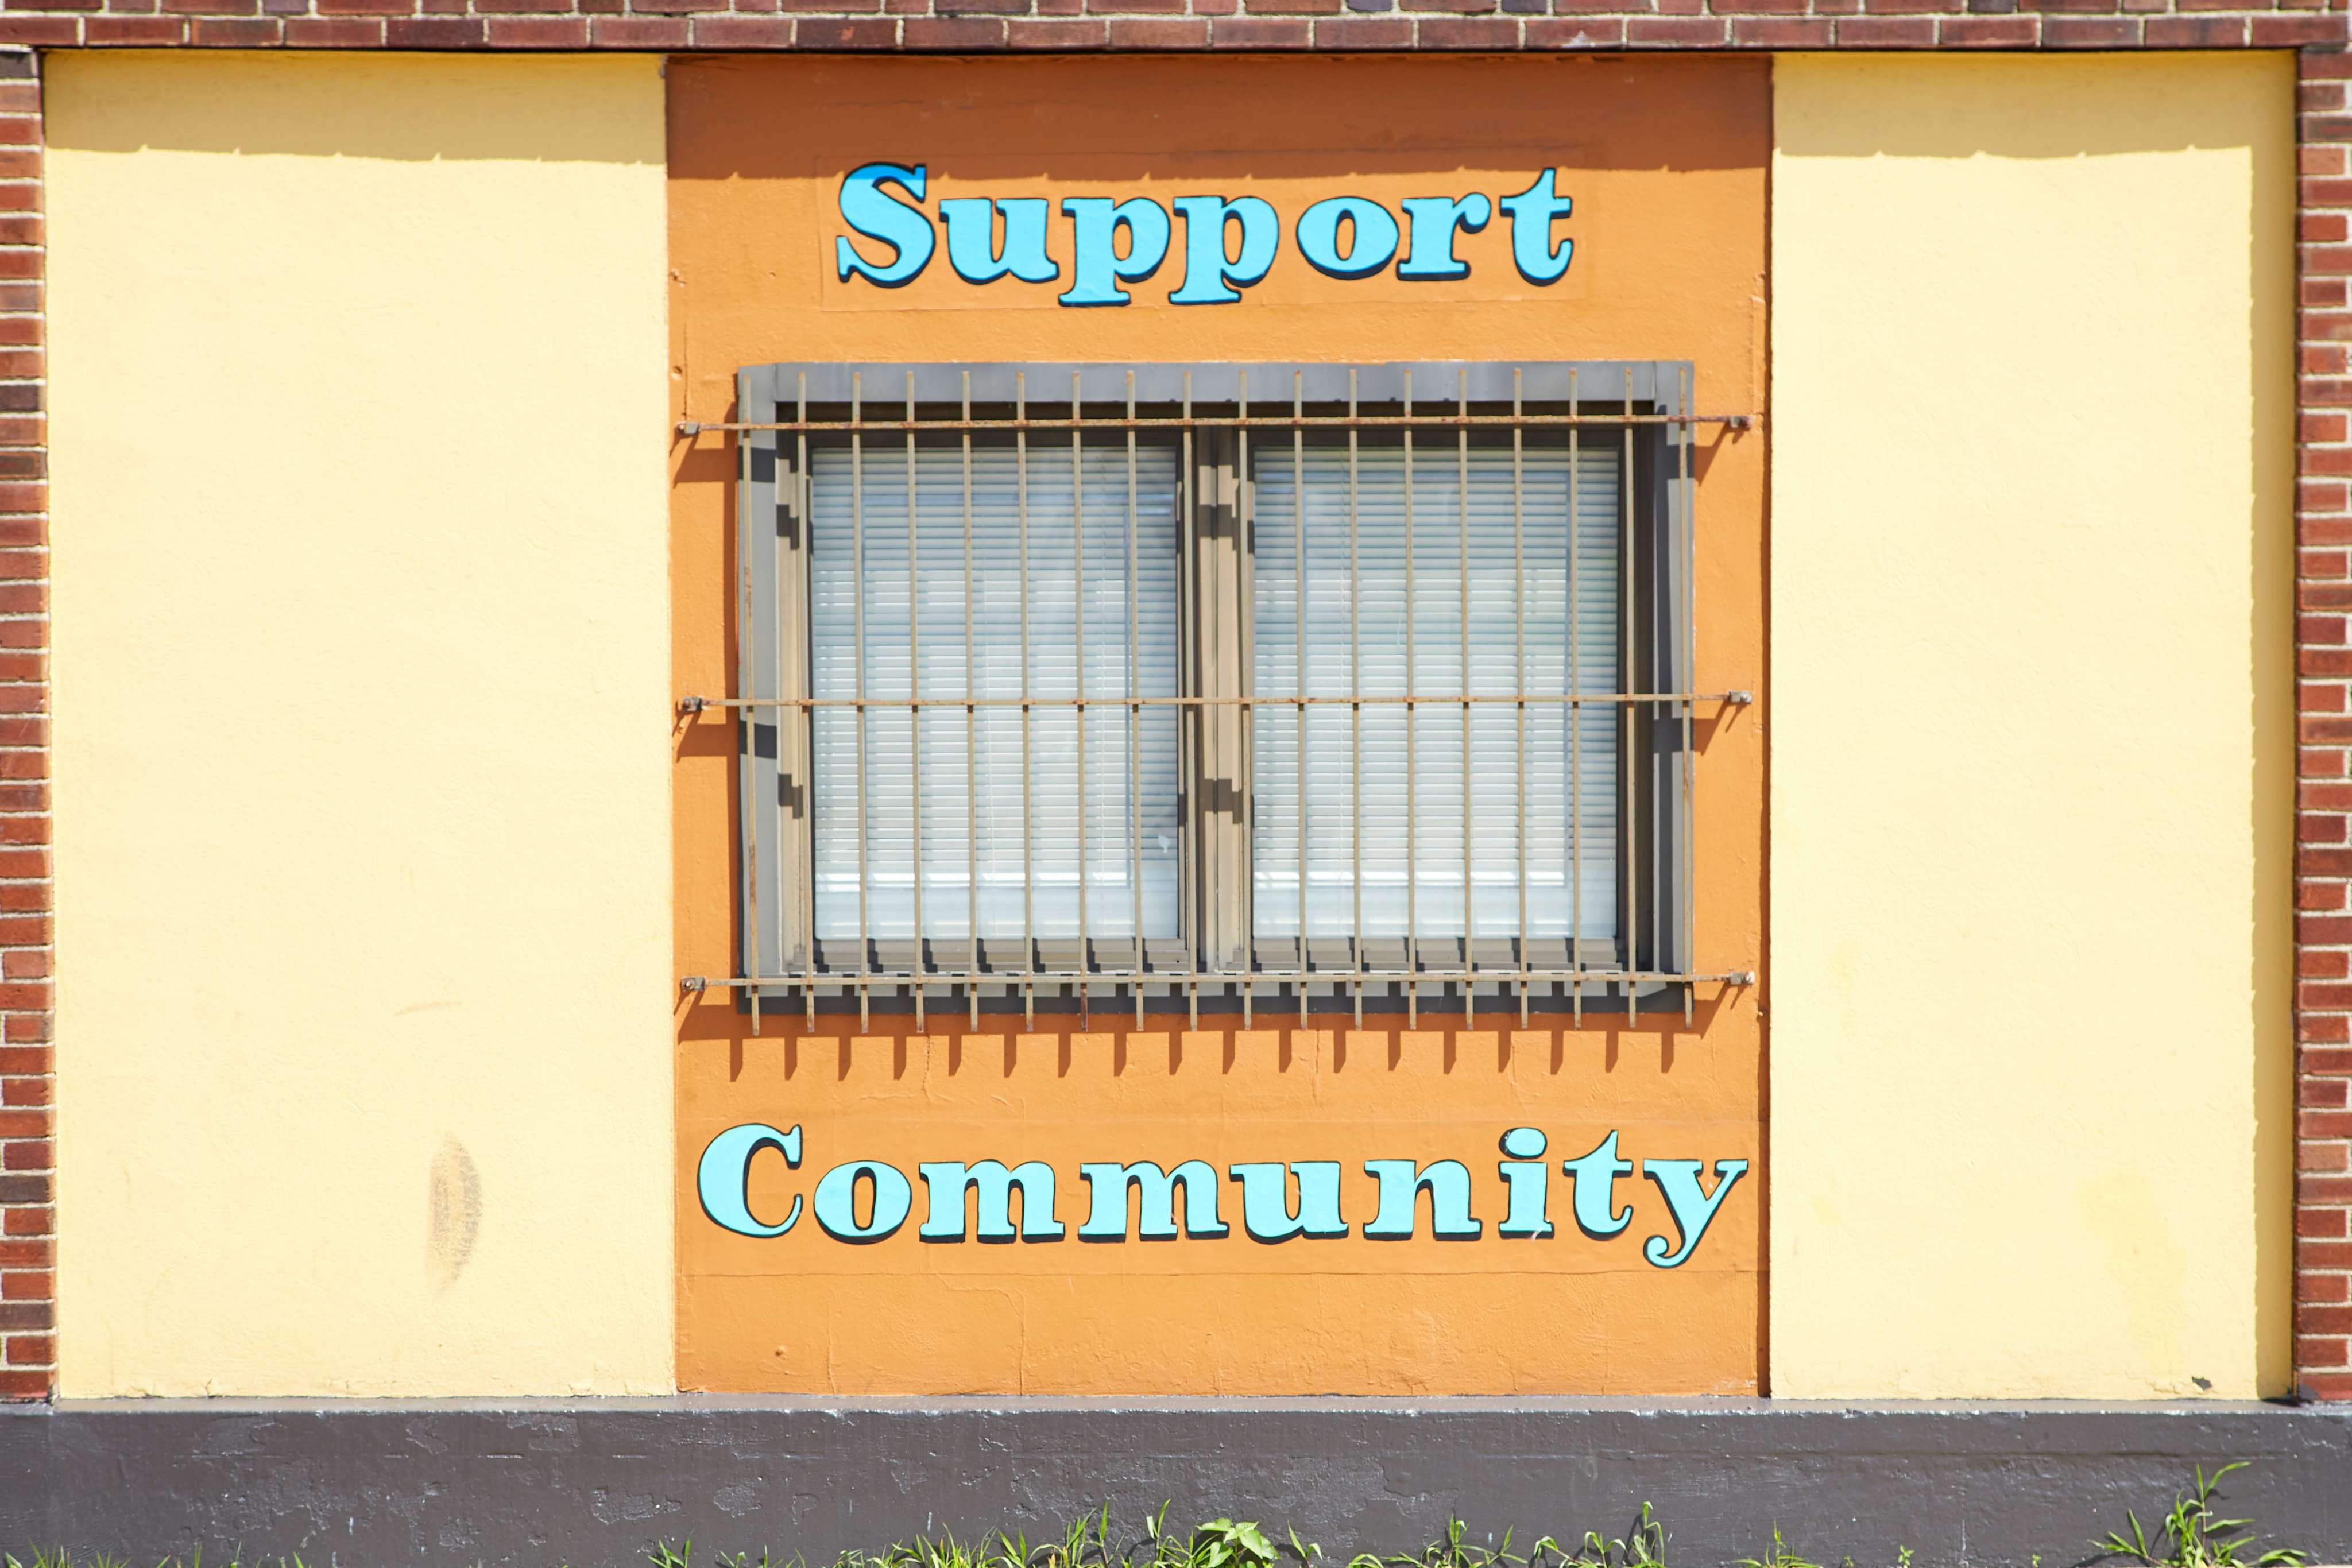 sign that says support community